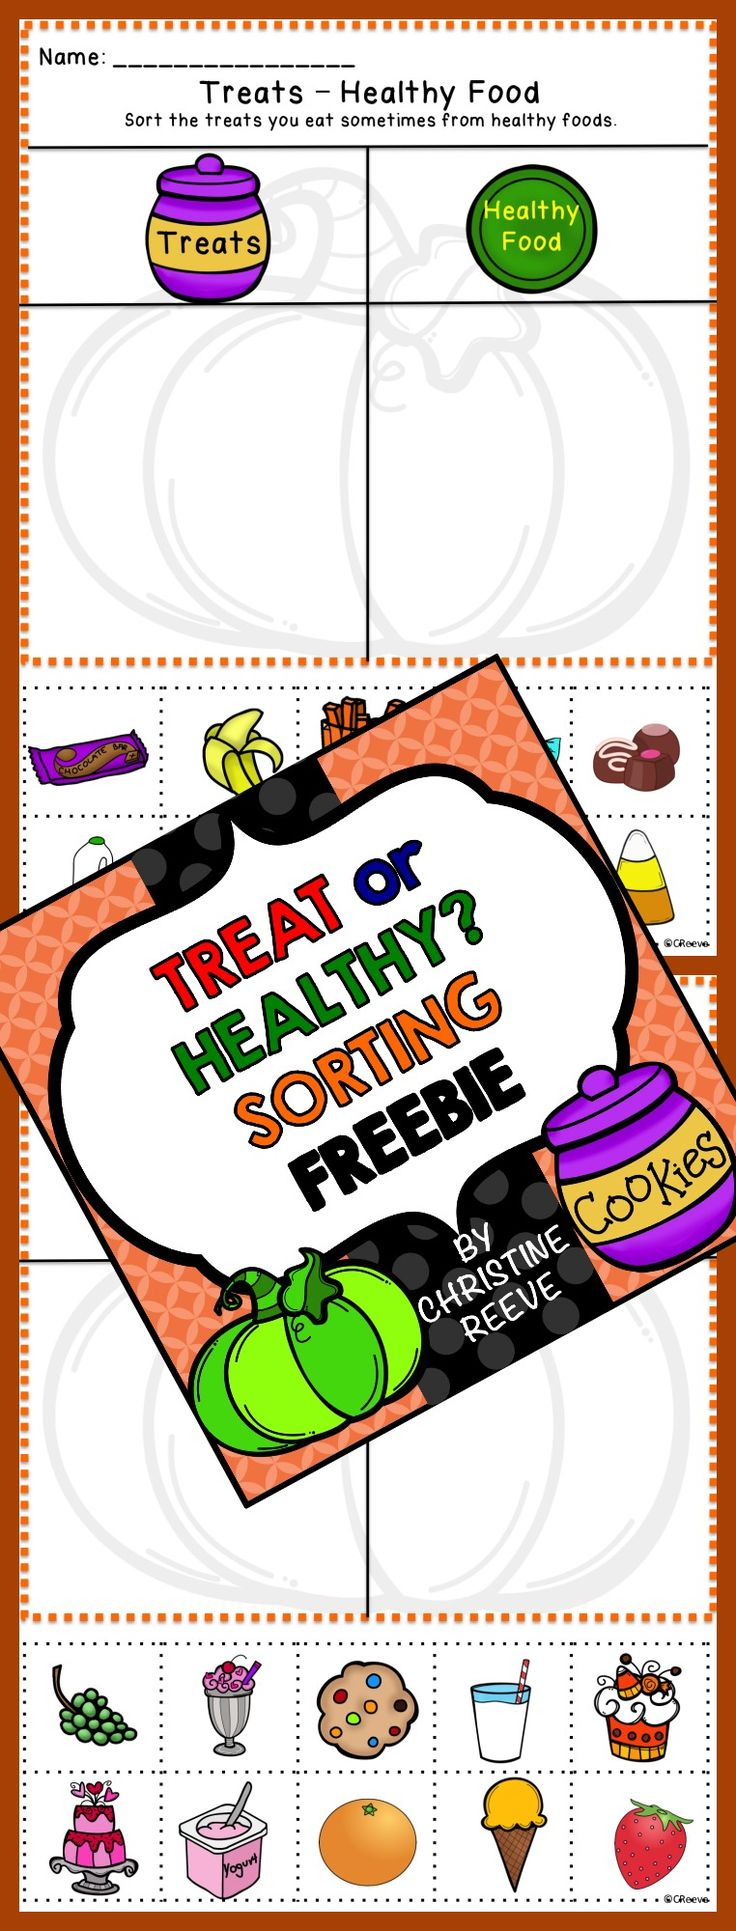 What goes together what doesn t belong fun worksheets and cut and - Perfect For Halloween Even If You Can T Use Halloween Activities No Bats Ghosts Or Witches Included 2 Cut And Paste Worksheets Or Laminate